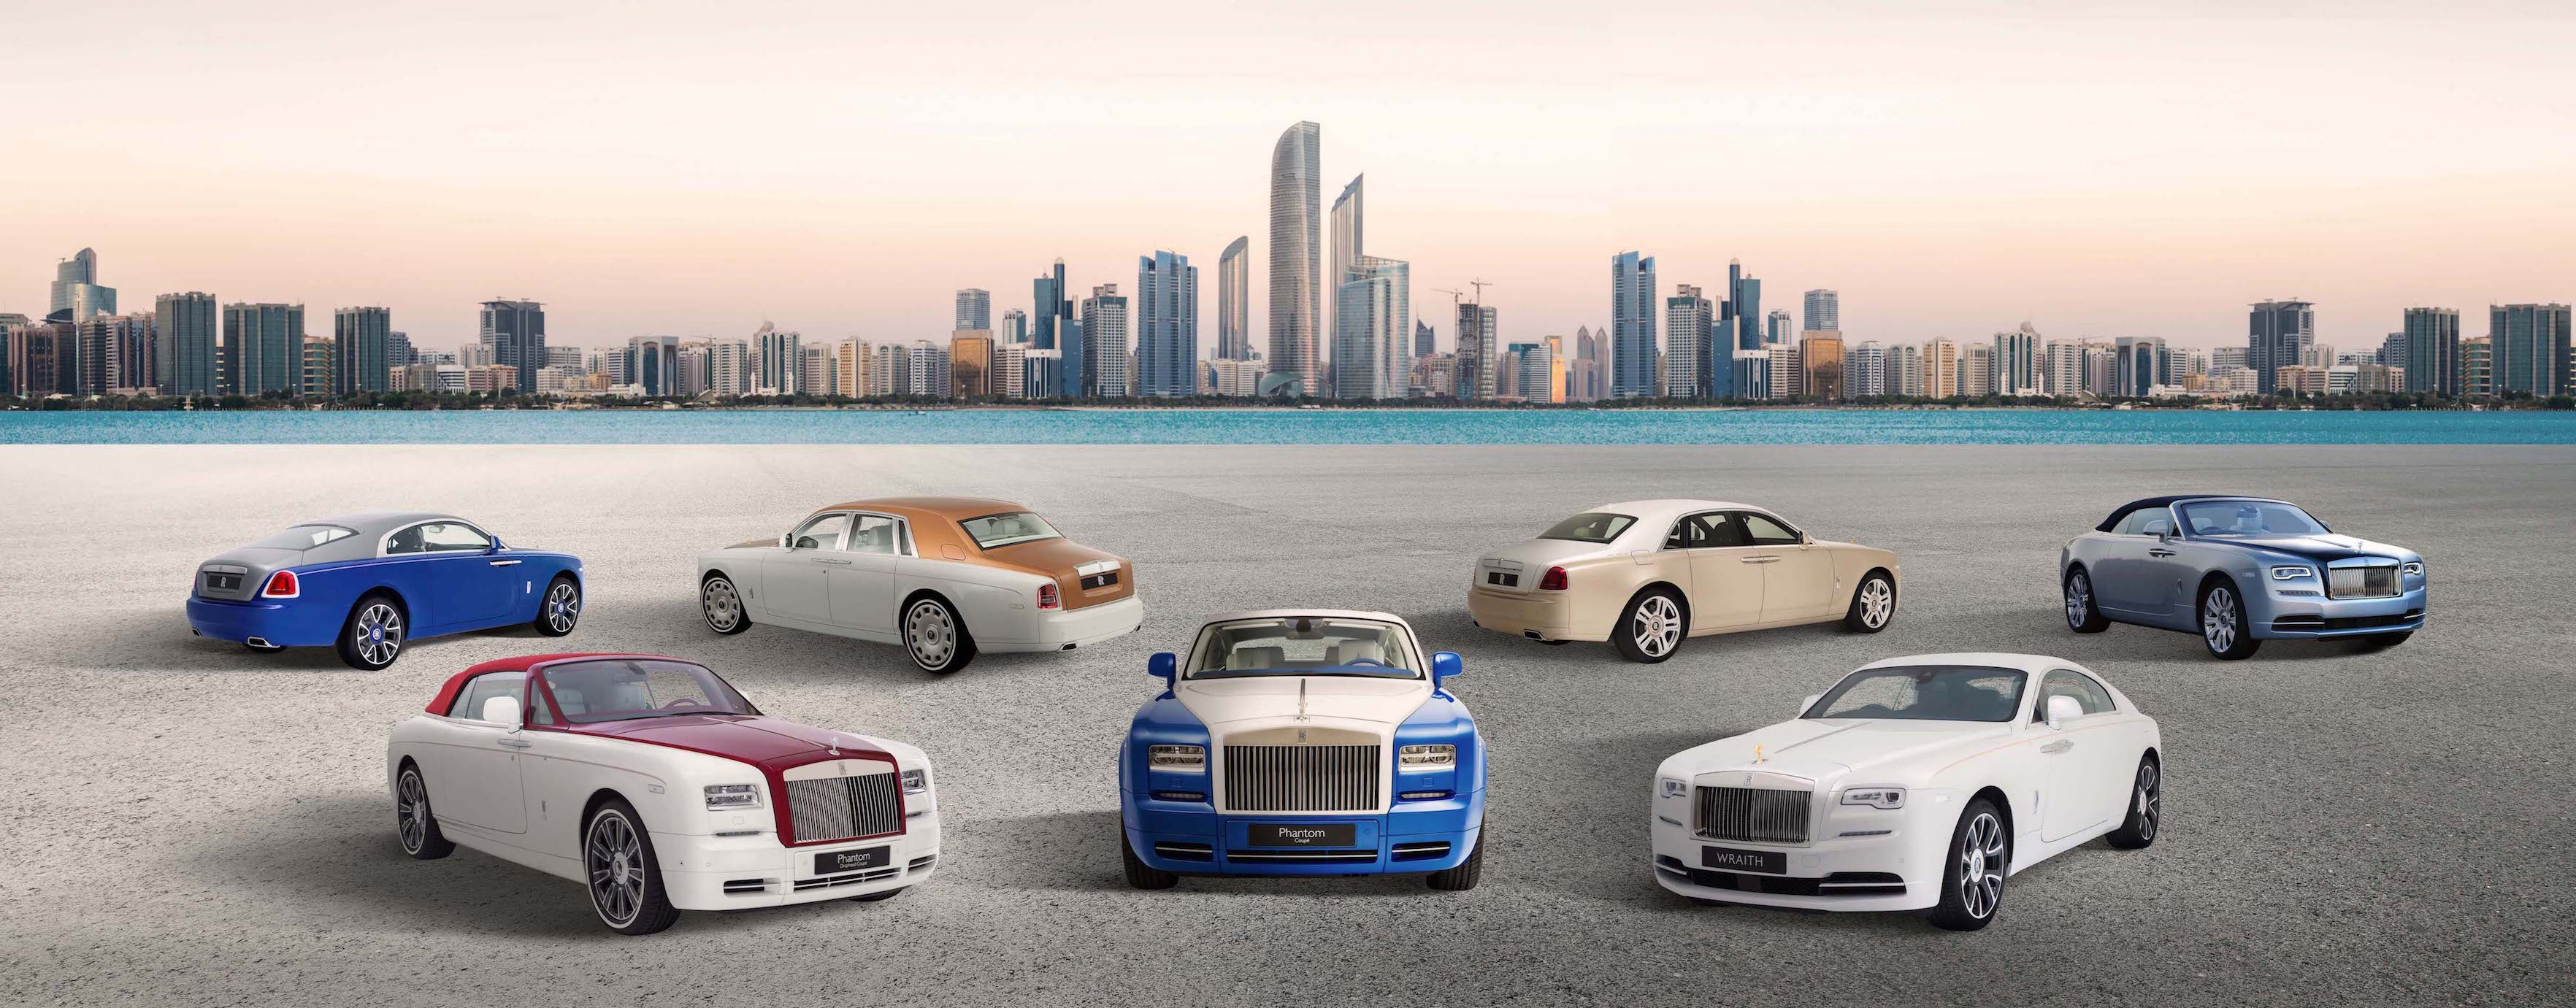 Rolls-Royce Debuts 'Wisdom' Collection Inspired By the Father of the Nation